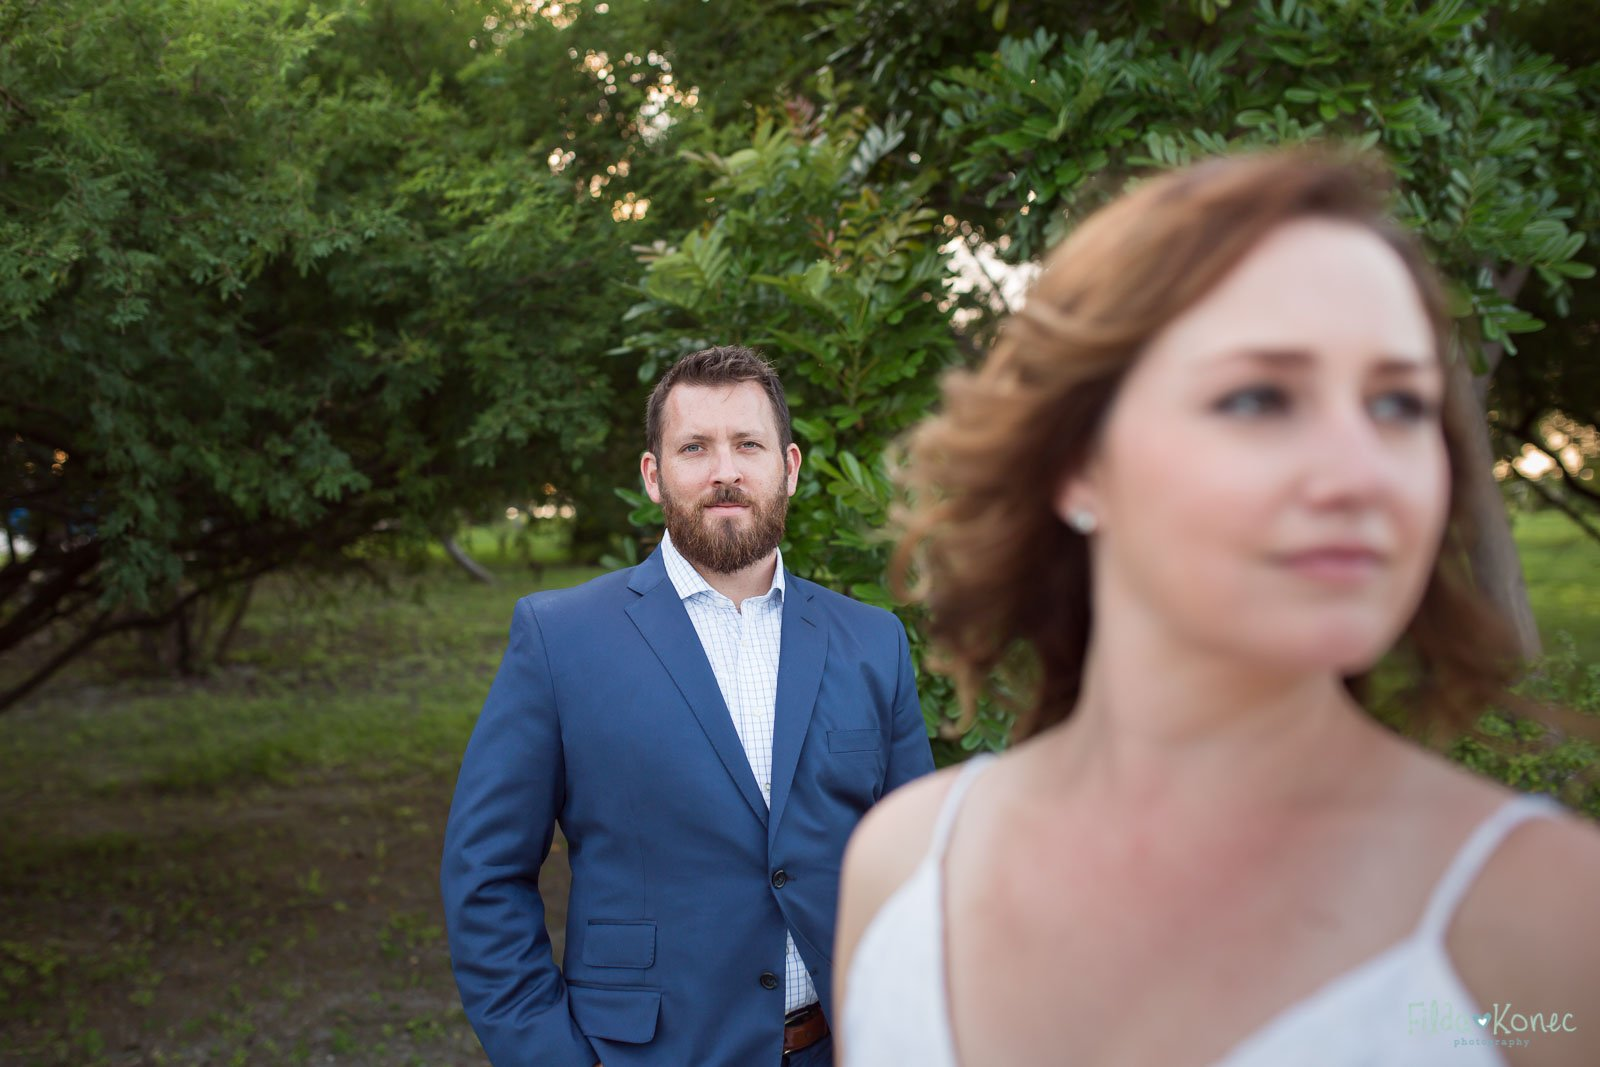 portrait of groom with bride in the foreground